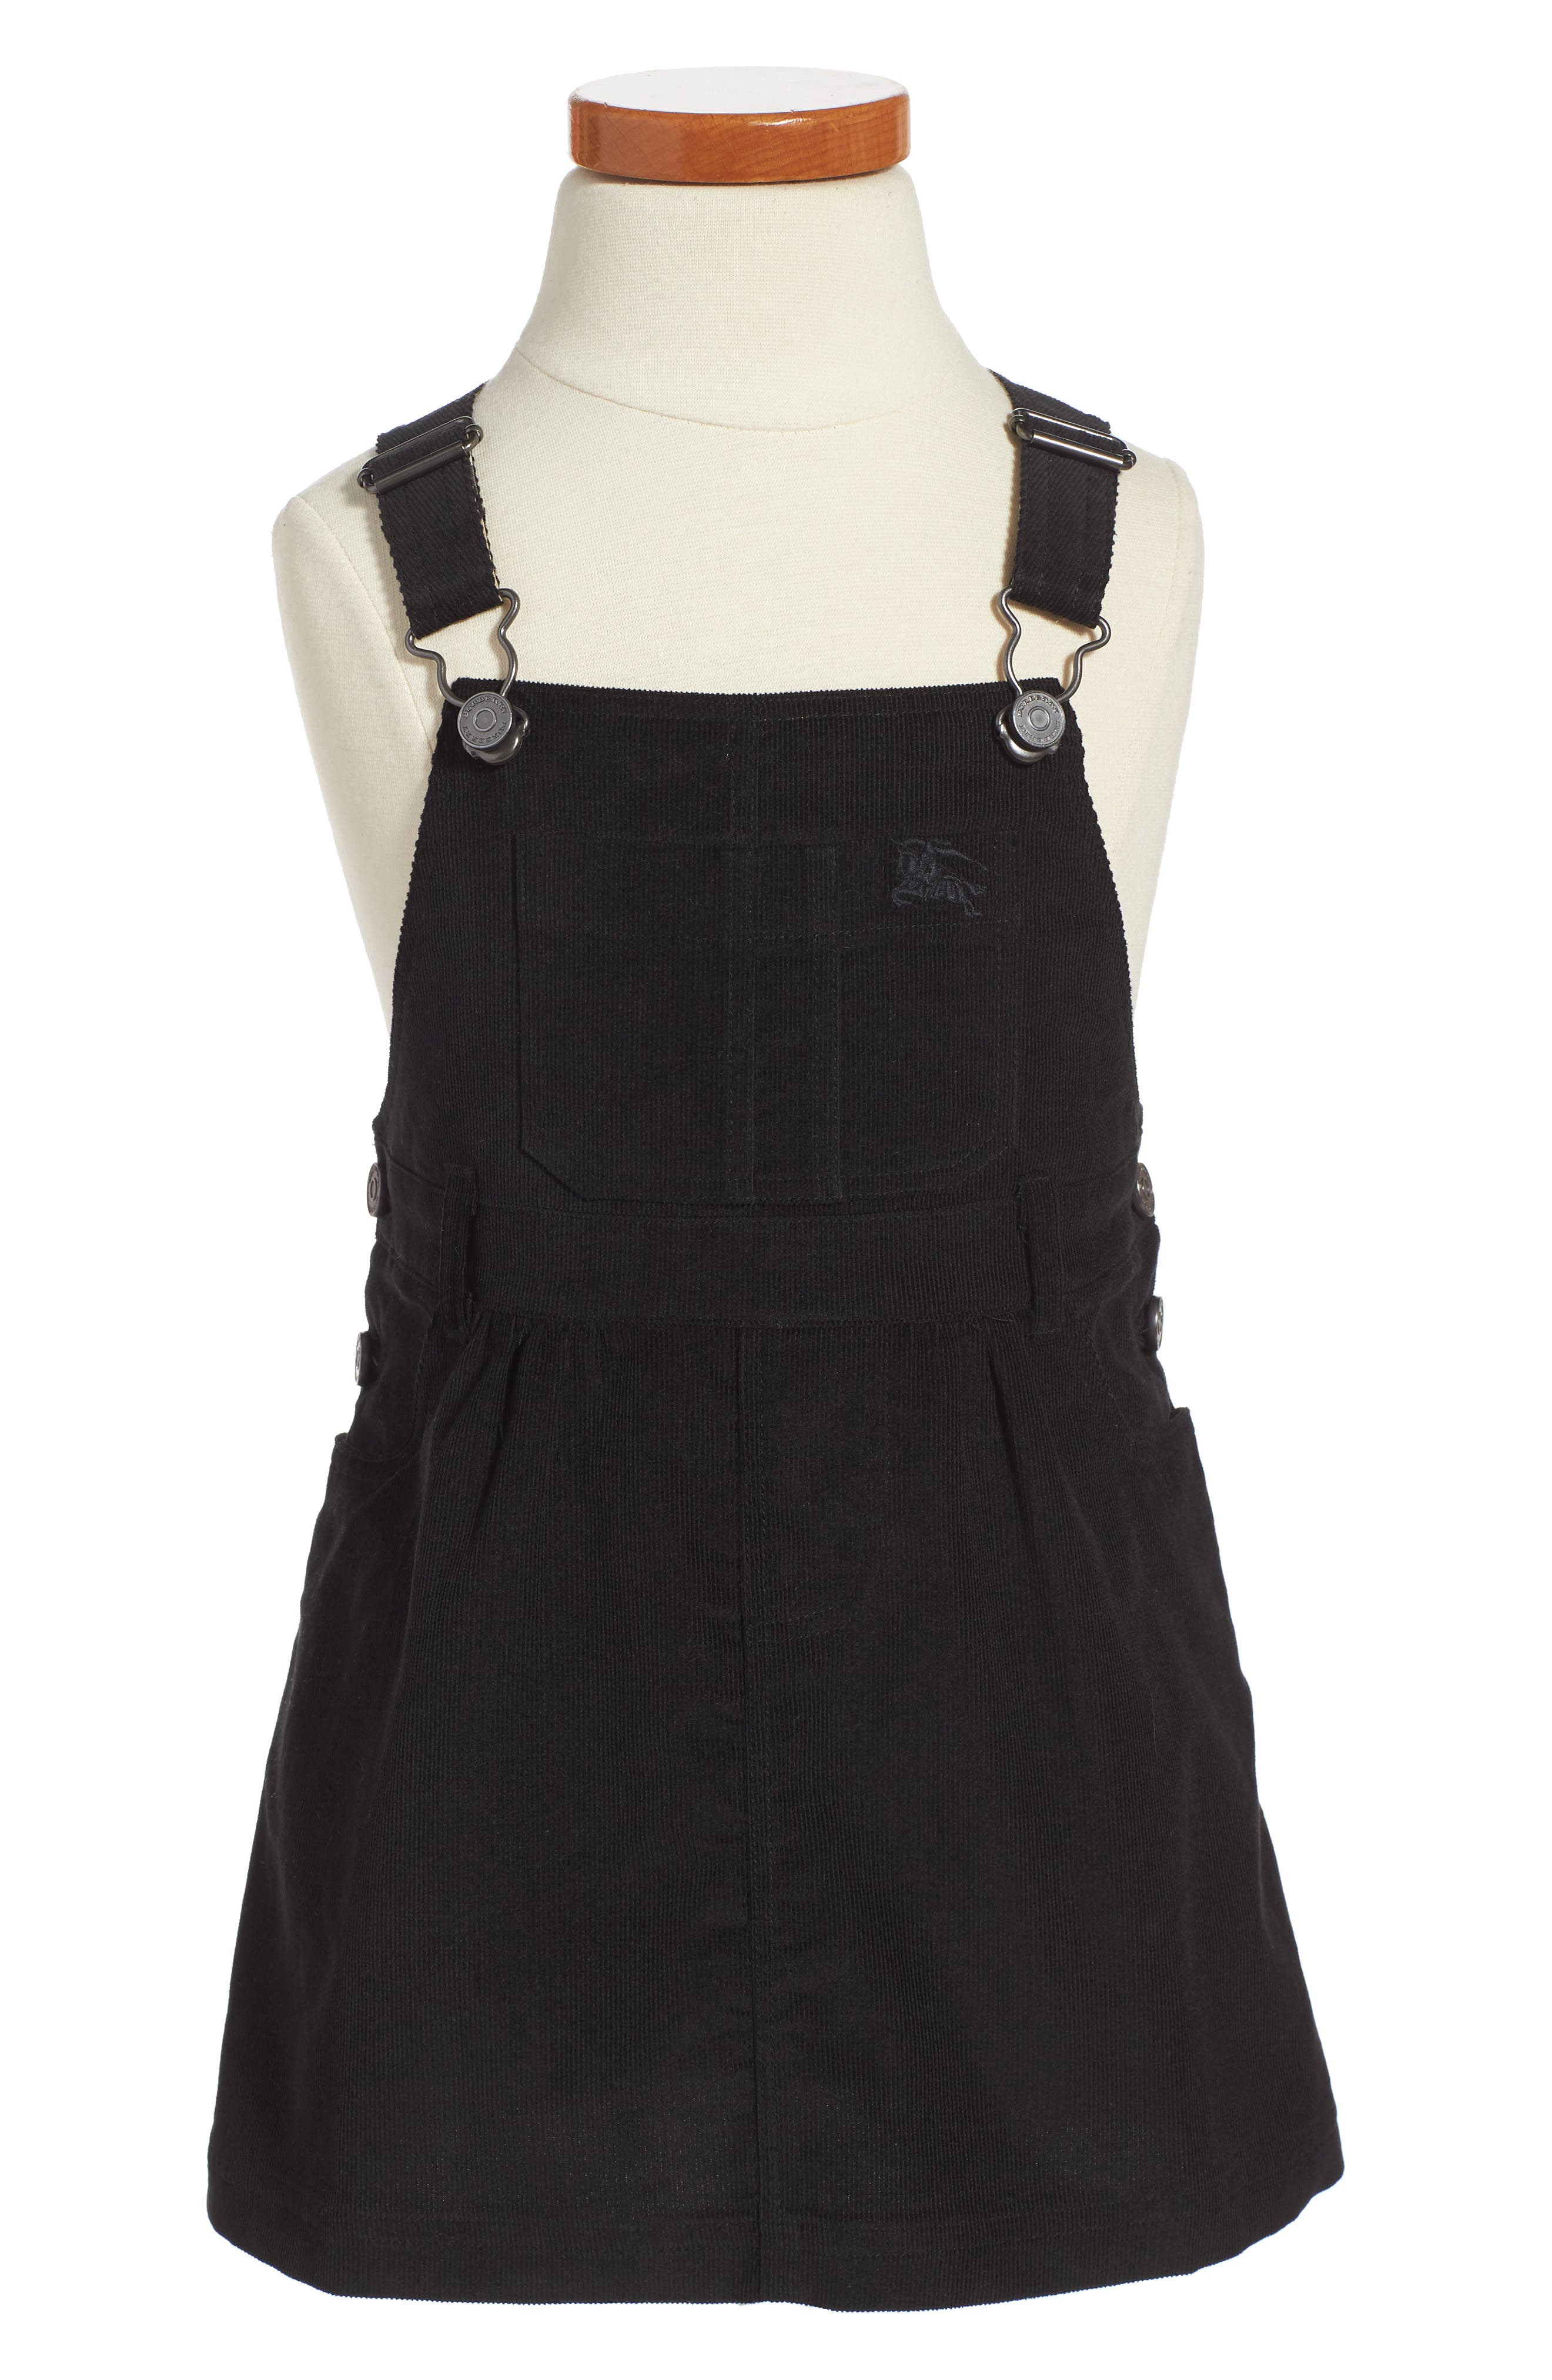 Burberry Wilma Overalls Dress (Toddler Girls)